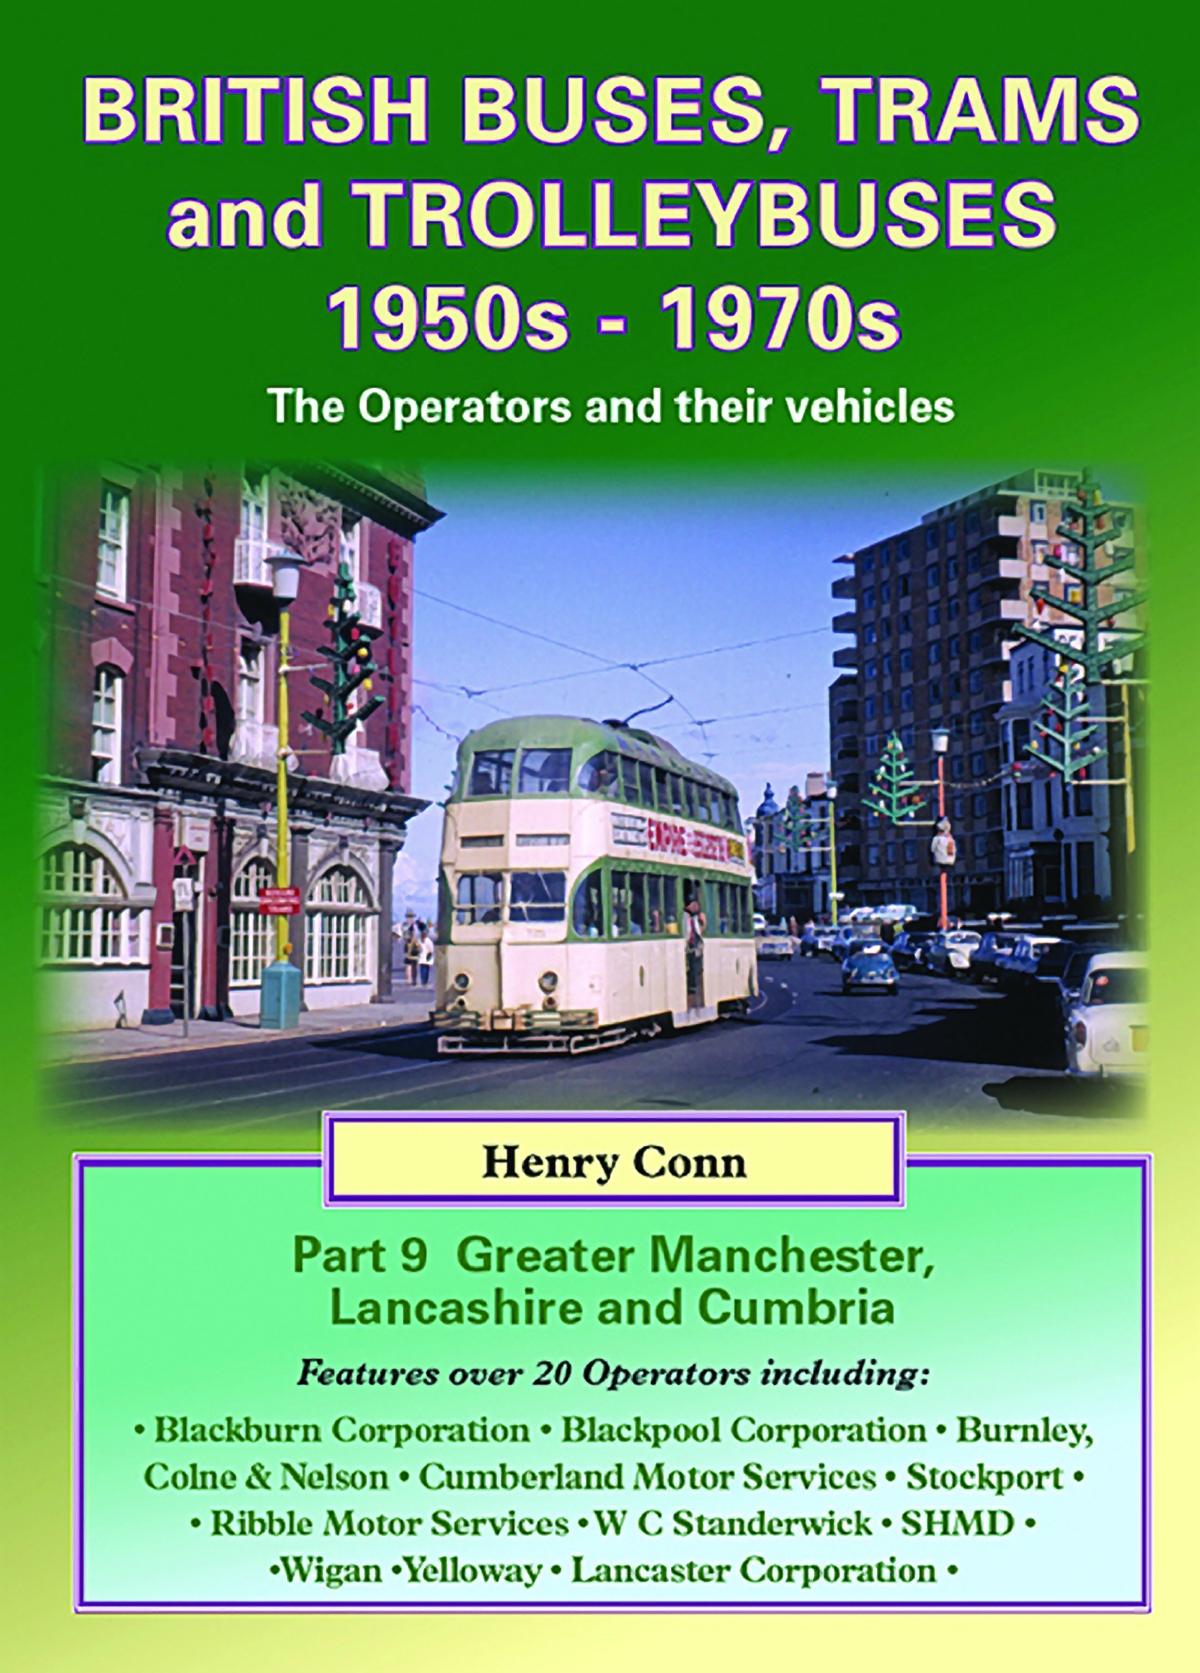 3979 - Buses & Trolleybuses Part 9: Greater Manchester, Lancashire and Cumbria